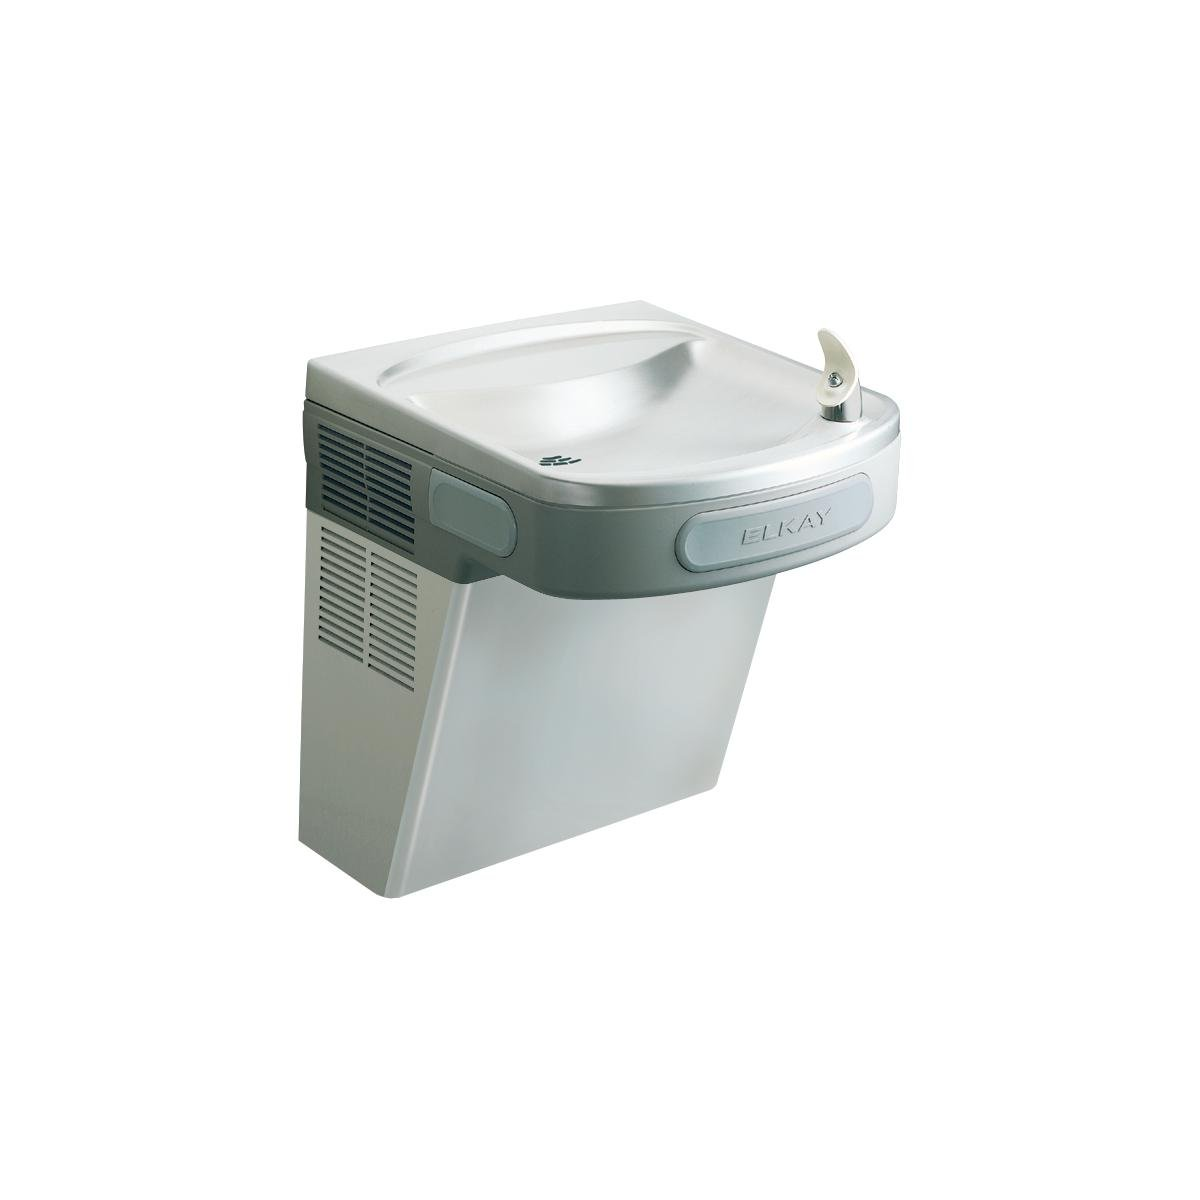 Elkay EZS8S Cooler Wall Mount ADA Non-Filtered 8 GPH Stainless